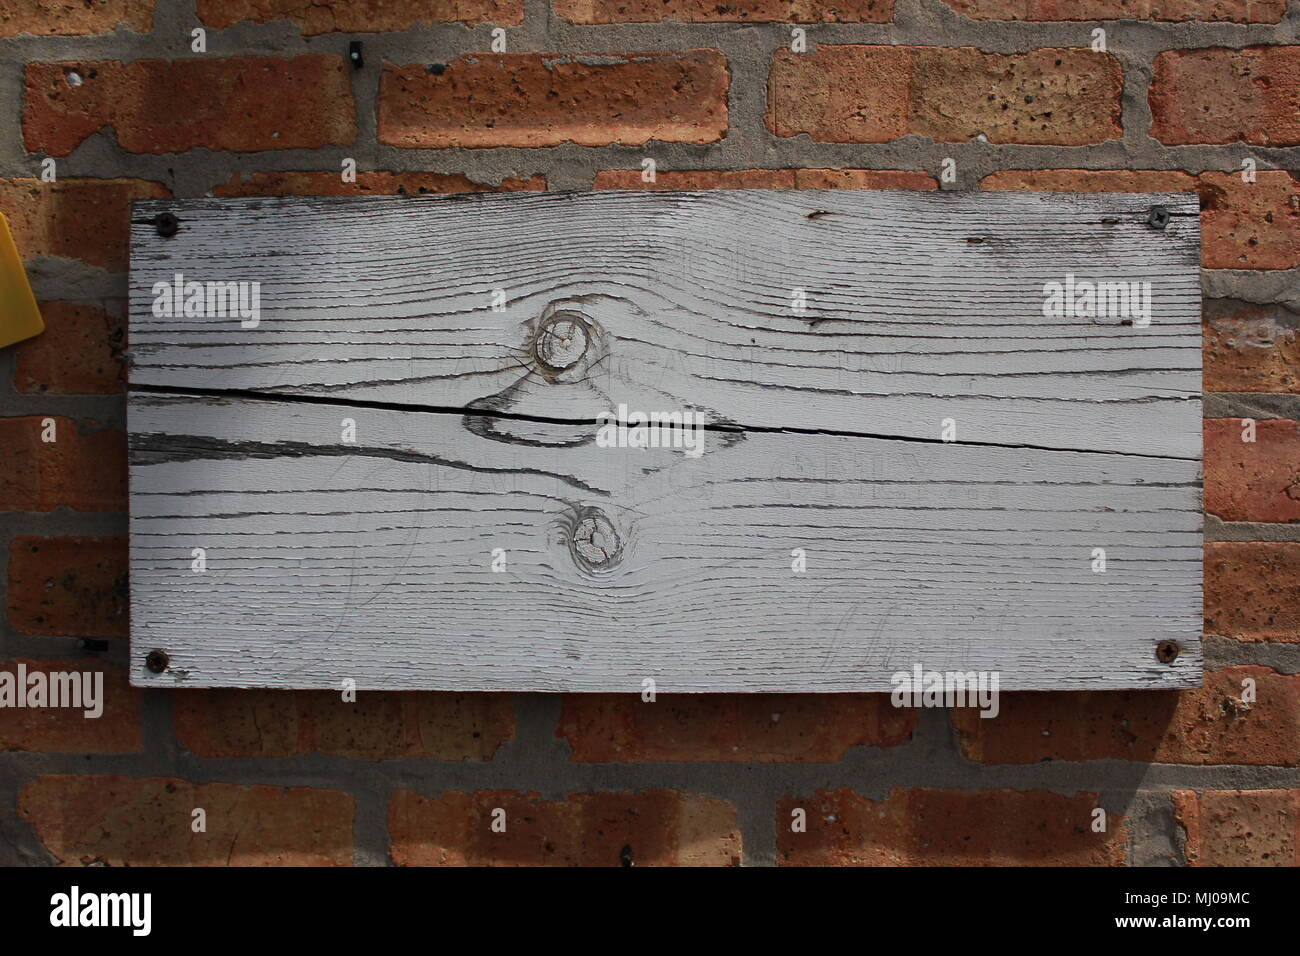 Weathered plank board screwed into a brick wall. - Stock Image